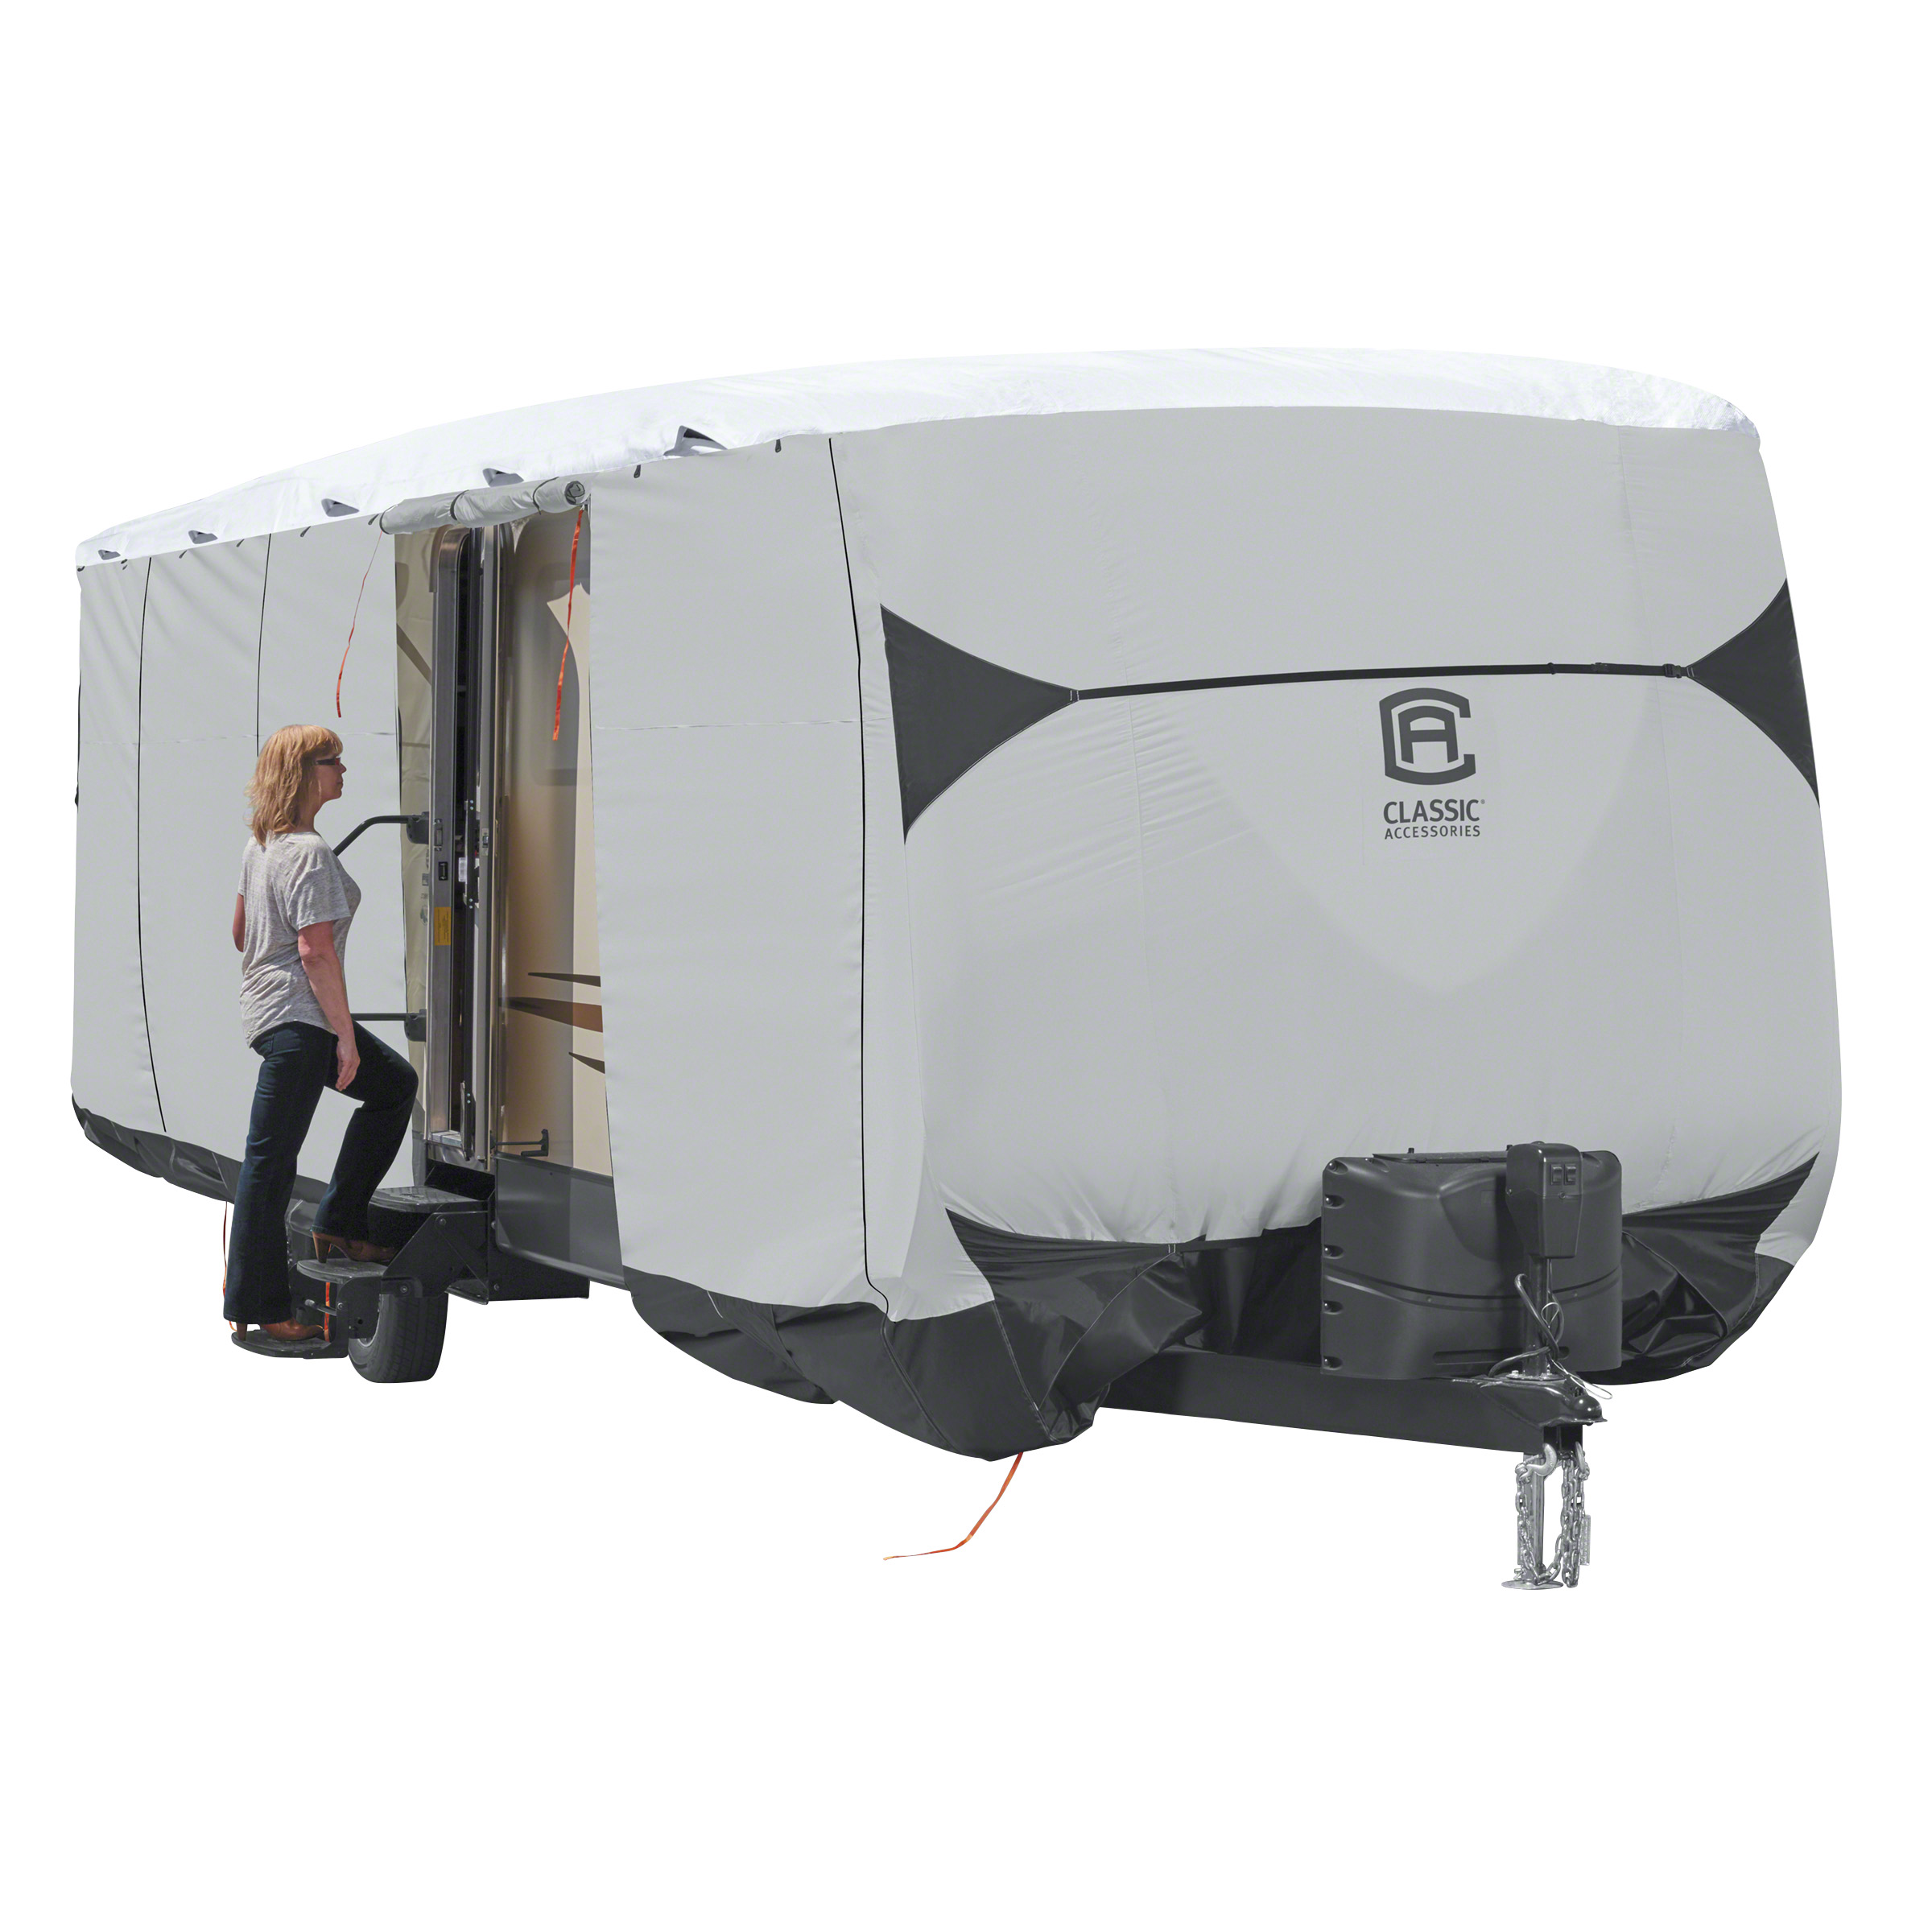 Classic Accessories OverDrive SkyShield Deluxe Tyvek Travel Trailer Cover, Fits 24' - 27' Trailers - Water Repellent Tyvek RV Cover (80-386-101701-EX) - image 1 de 2